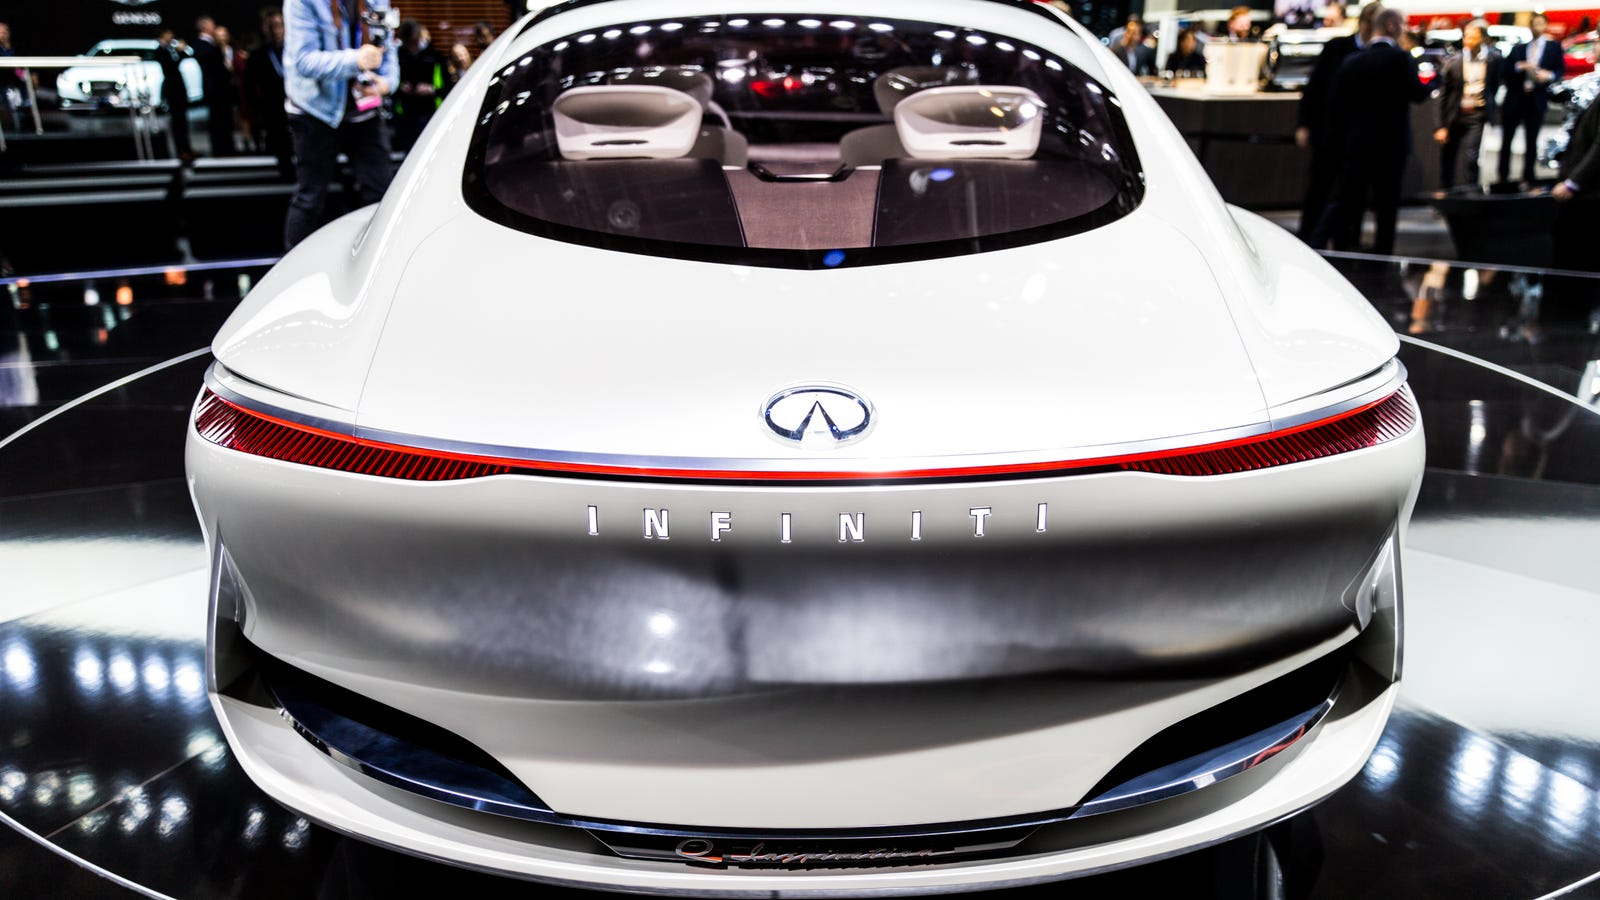 infiniti to go electric and hybrid after 2021  leaving radical engine plans up in the air